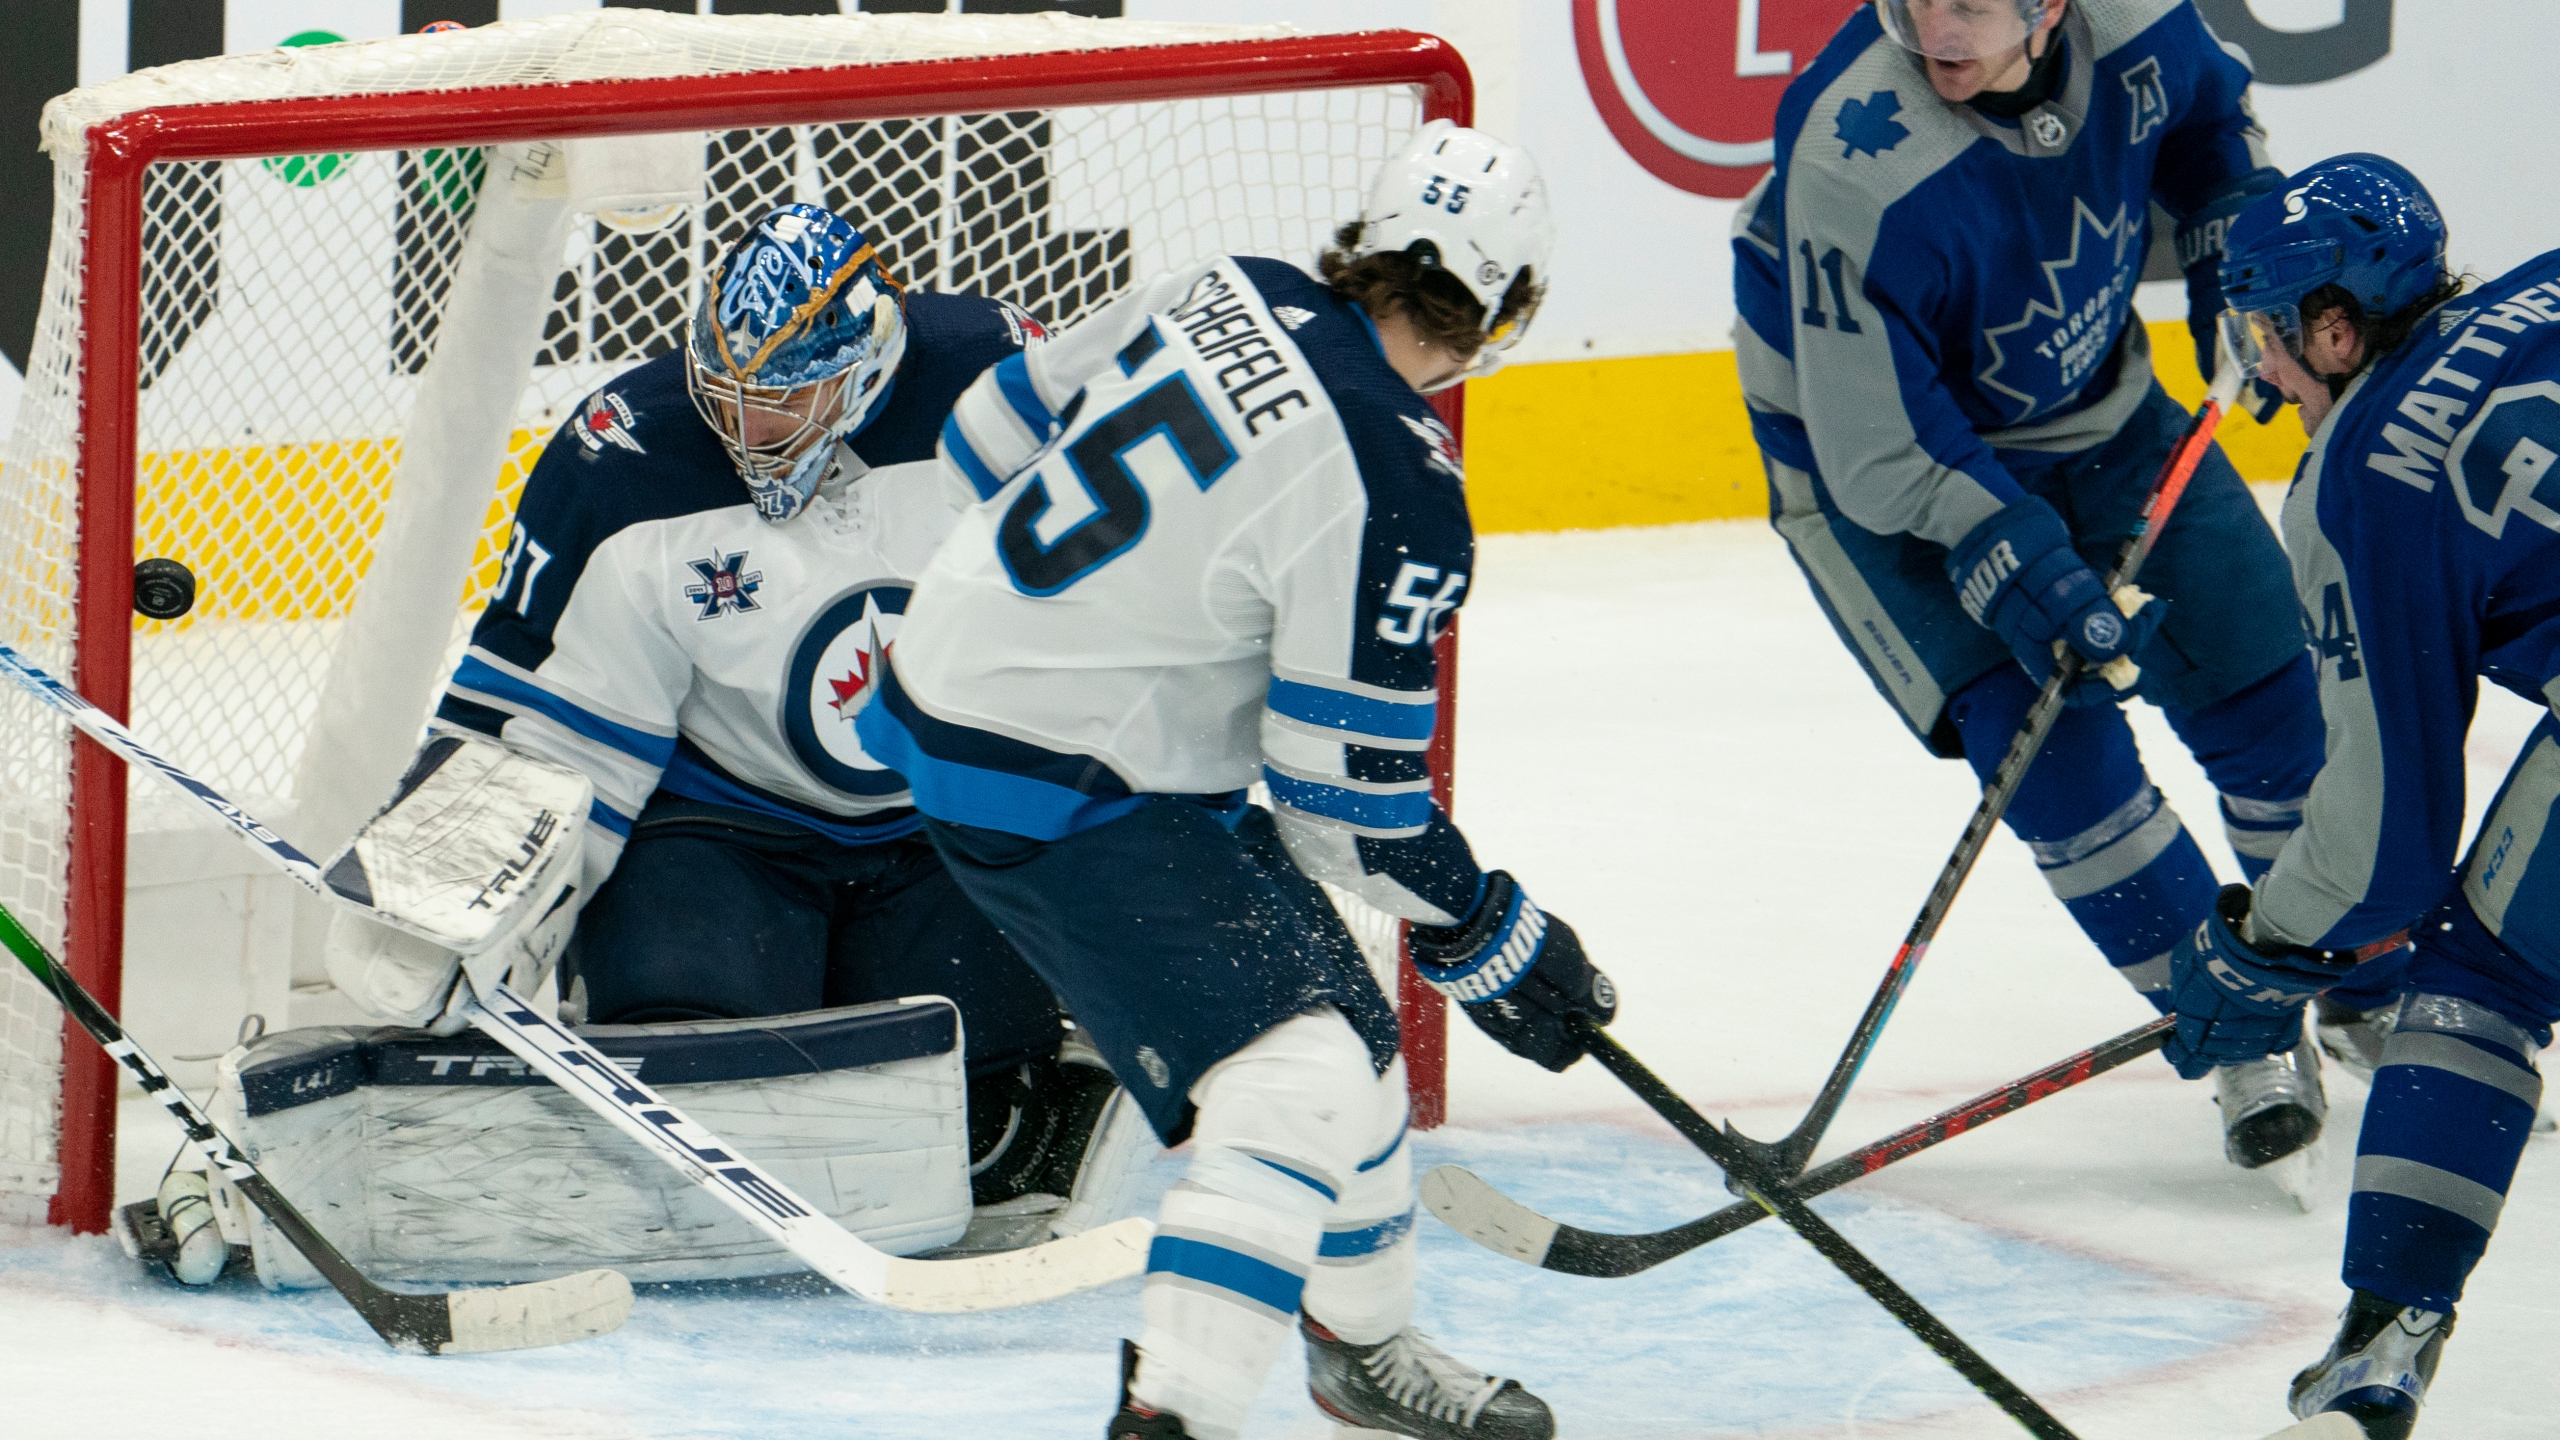 Toronto Maple Leafs center Auston Matthews(34) gets his second goal of the game on Winnipeg Jets goaltender Connor Hellebuyck(37) during an NHL hockey game, Tuesday, March 9, 2021, in Toronto, Canada. (AP Photo/Peter Power)